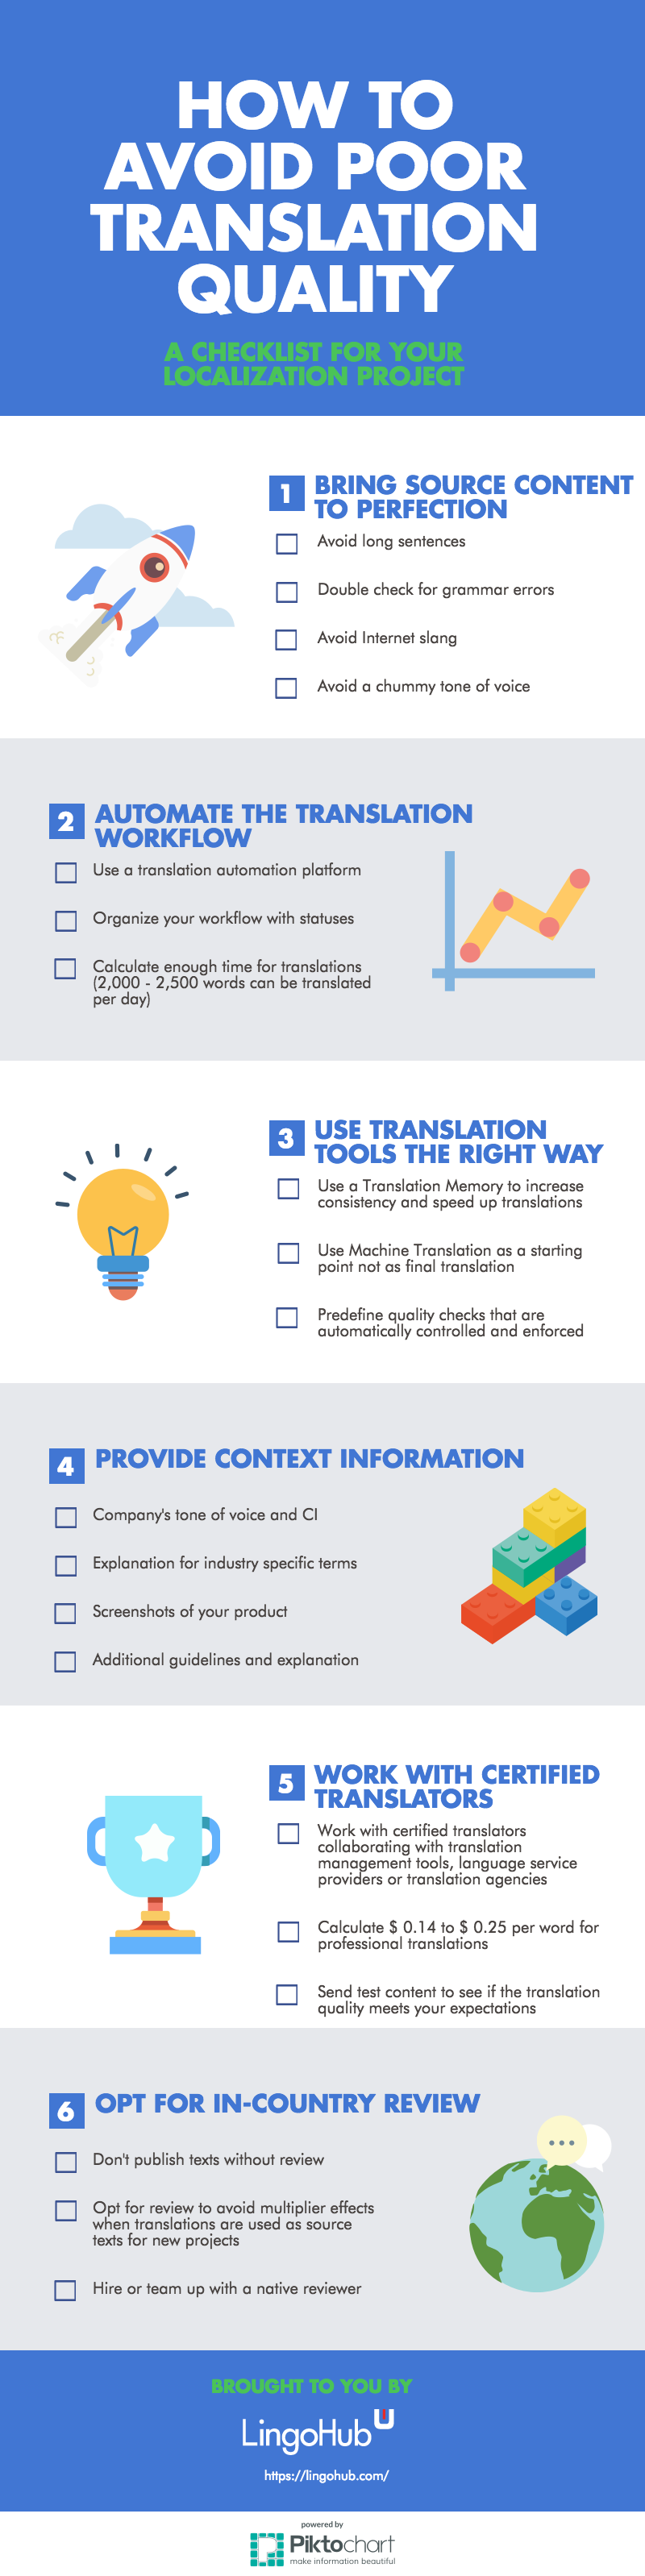 infographic-checklist-how-to-avoid-poor-translation-quality-small